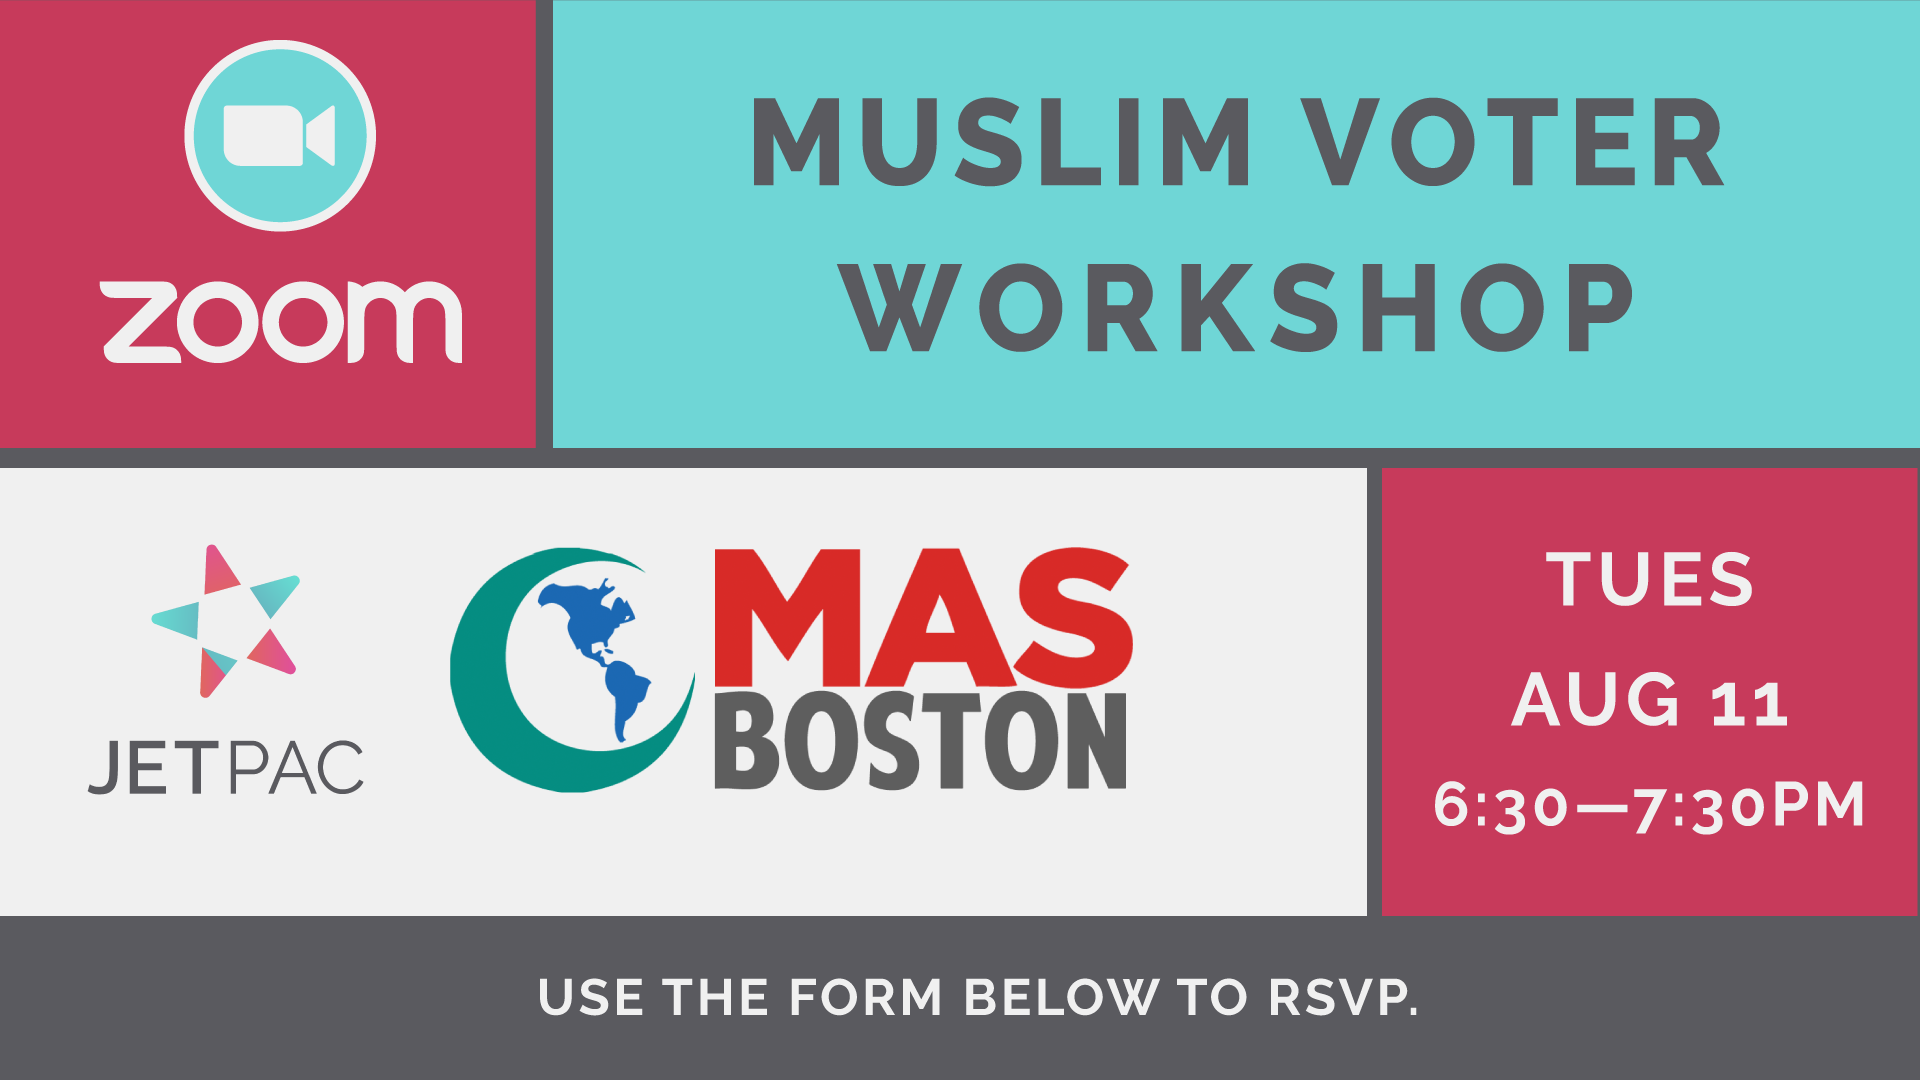 """A grid of information about the below event. It shows the date as August 11 and the time of the event is between 6:30 and 7:30PM. The logos of Jetpac and MAS Boston are visible, as is a Zoom logo. The title of the event is """"Muslim Voter Workshop""""."""